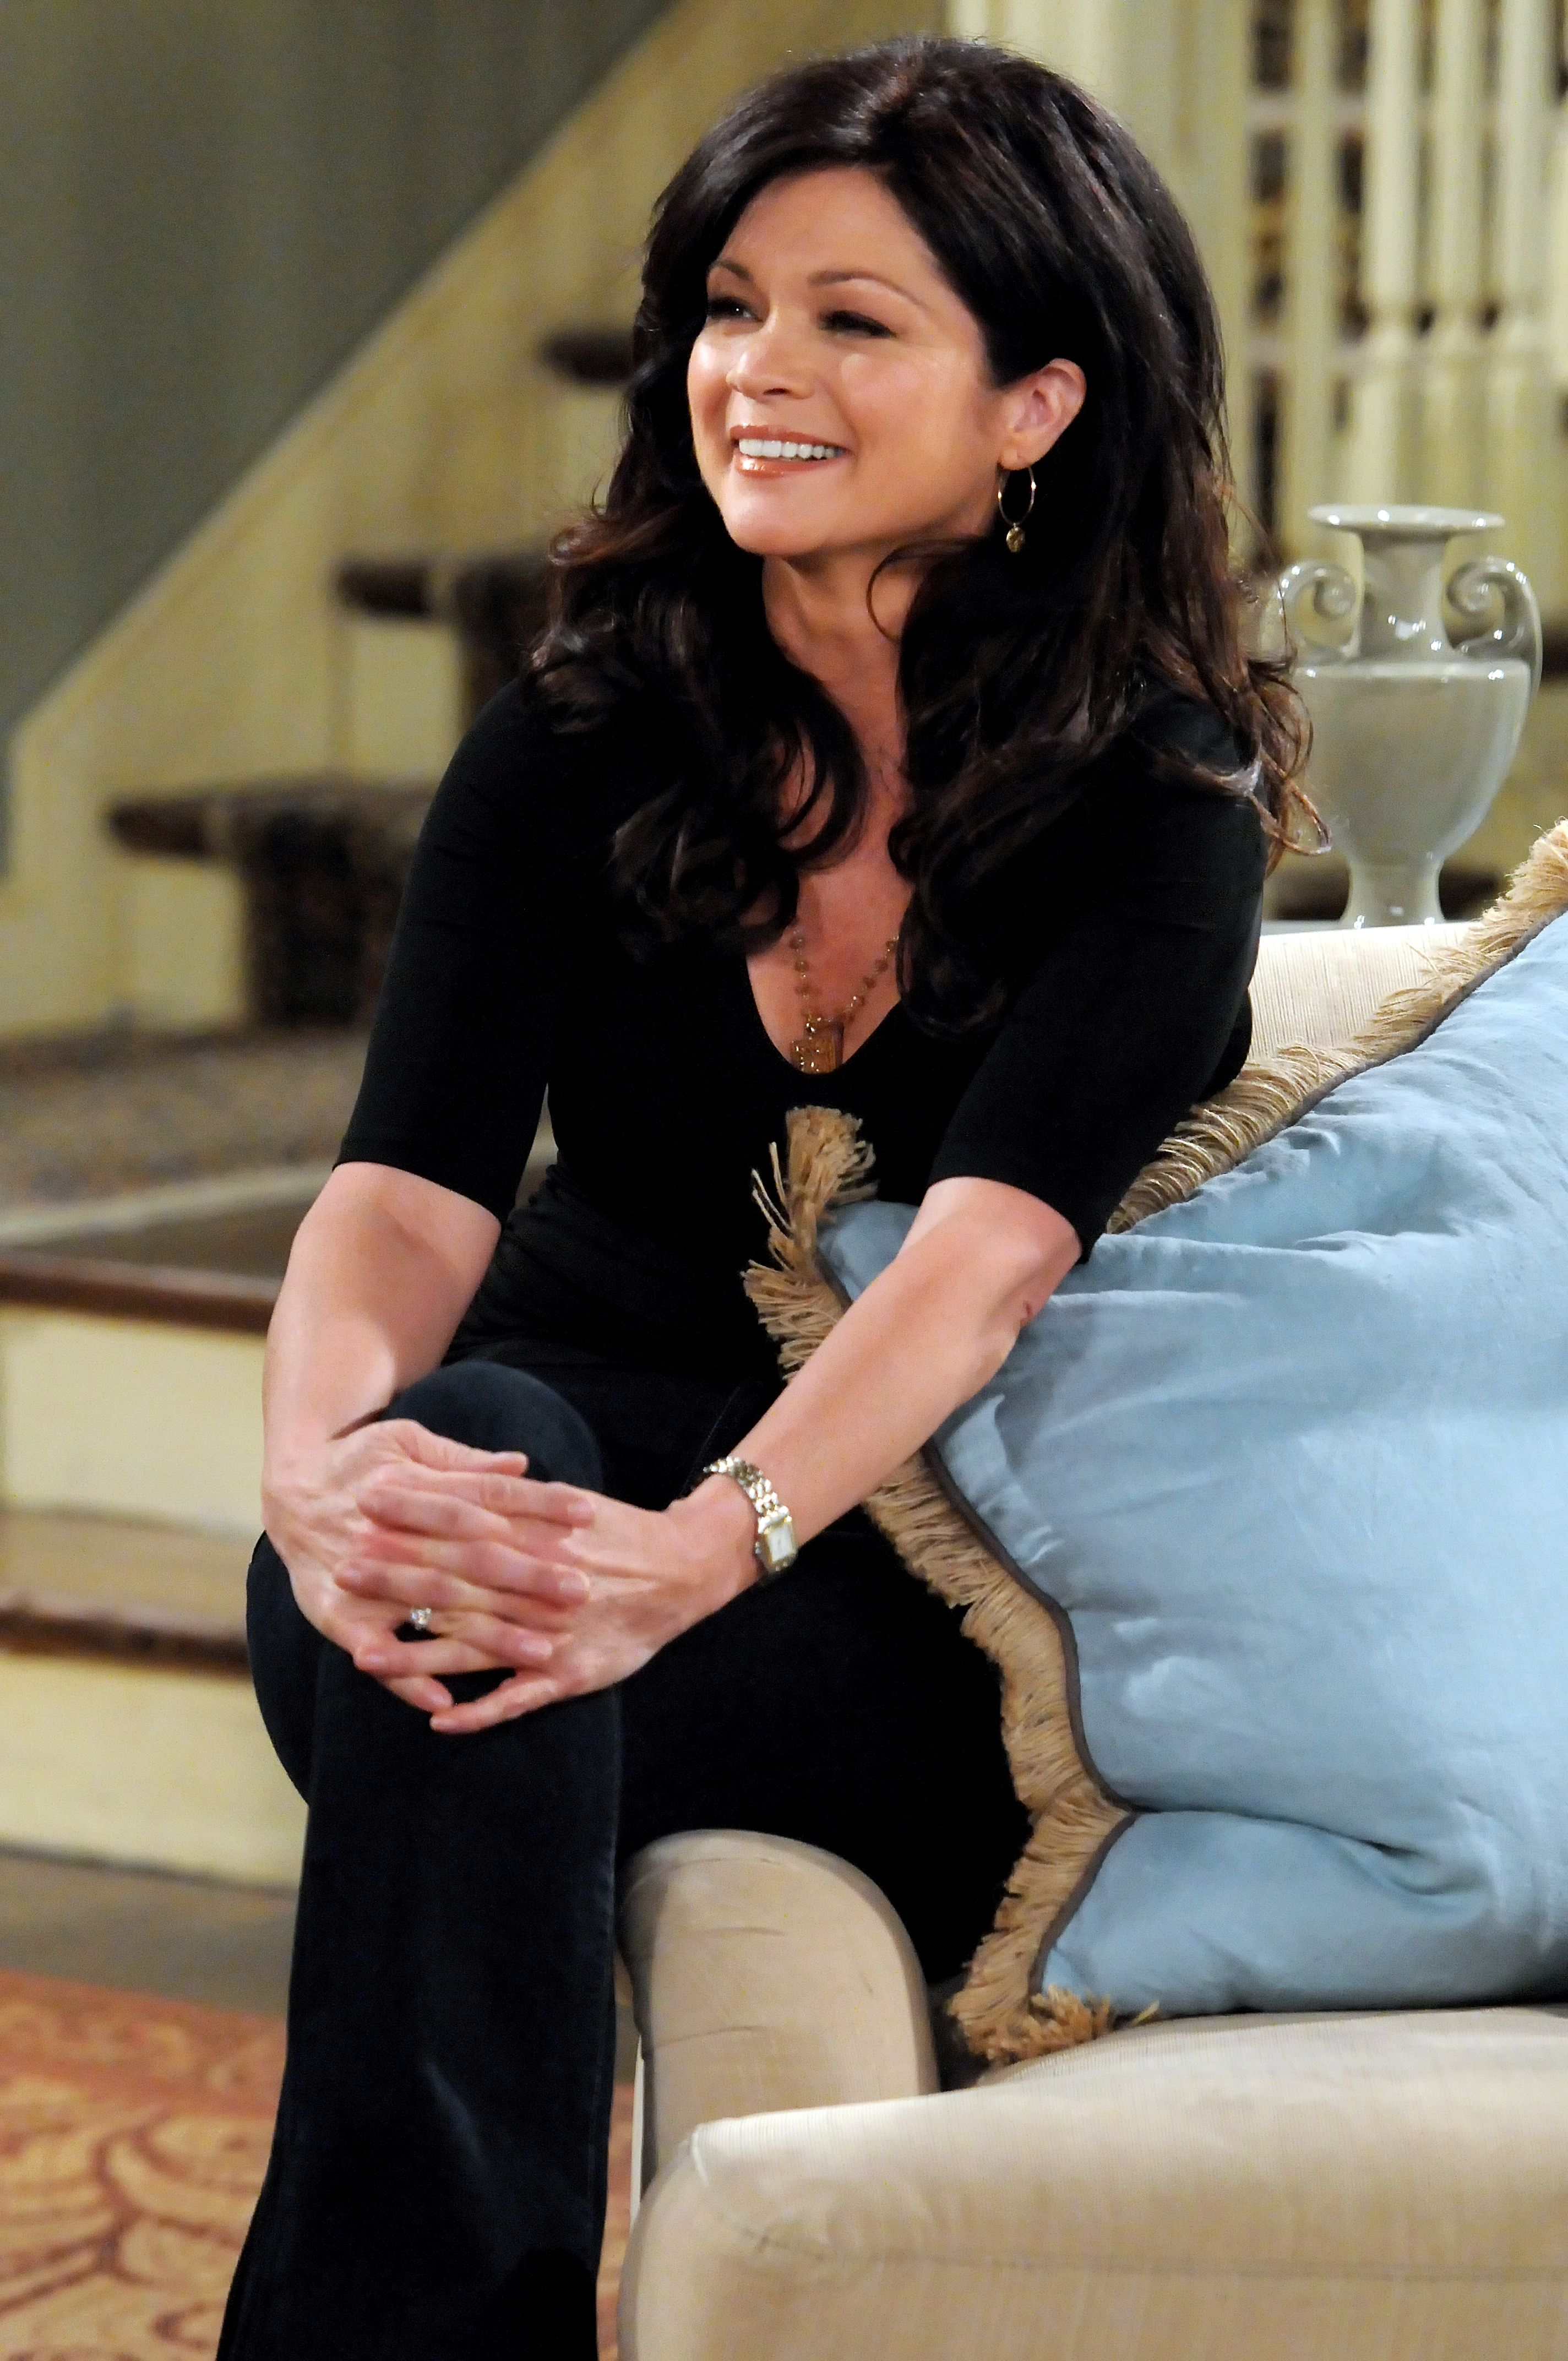 Valerie Bertinelli Valerie Bertinelli Beautiful Old Woman Celebrities Female